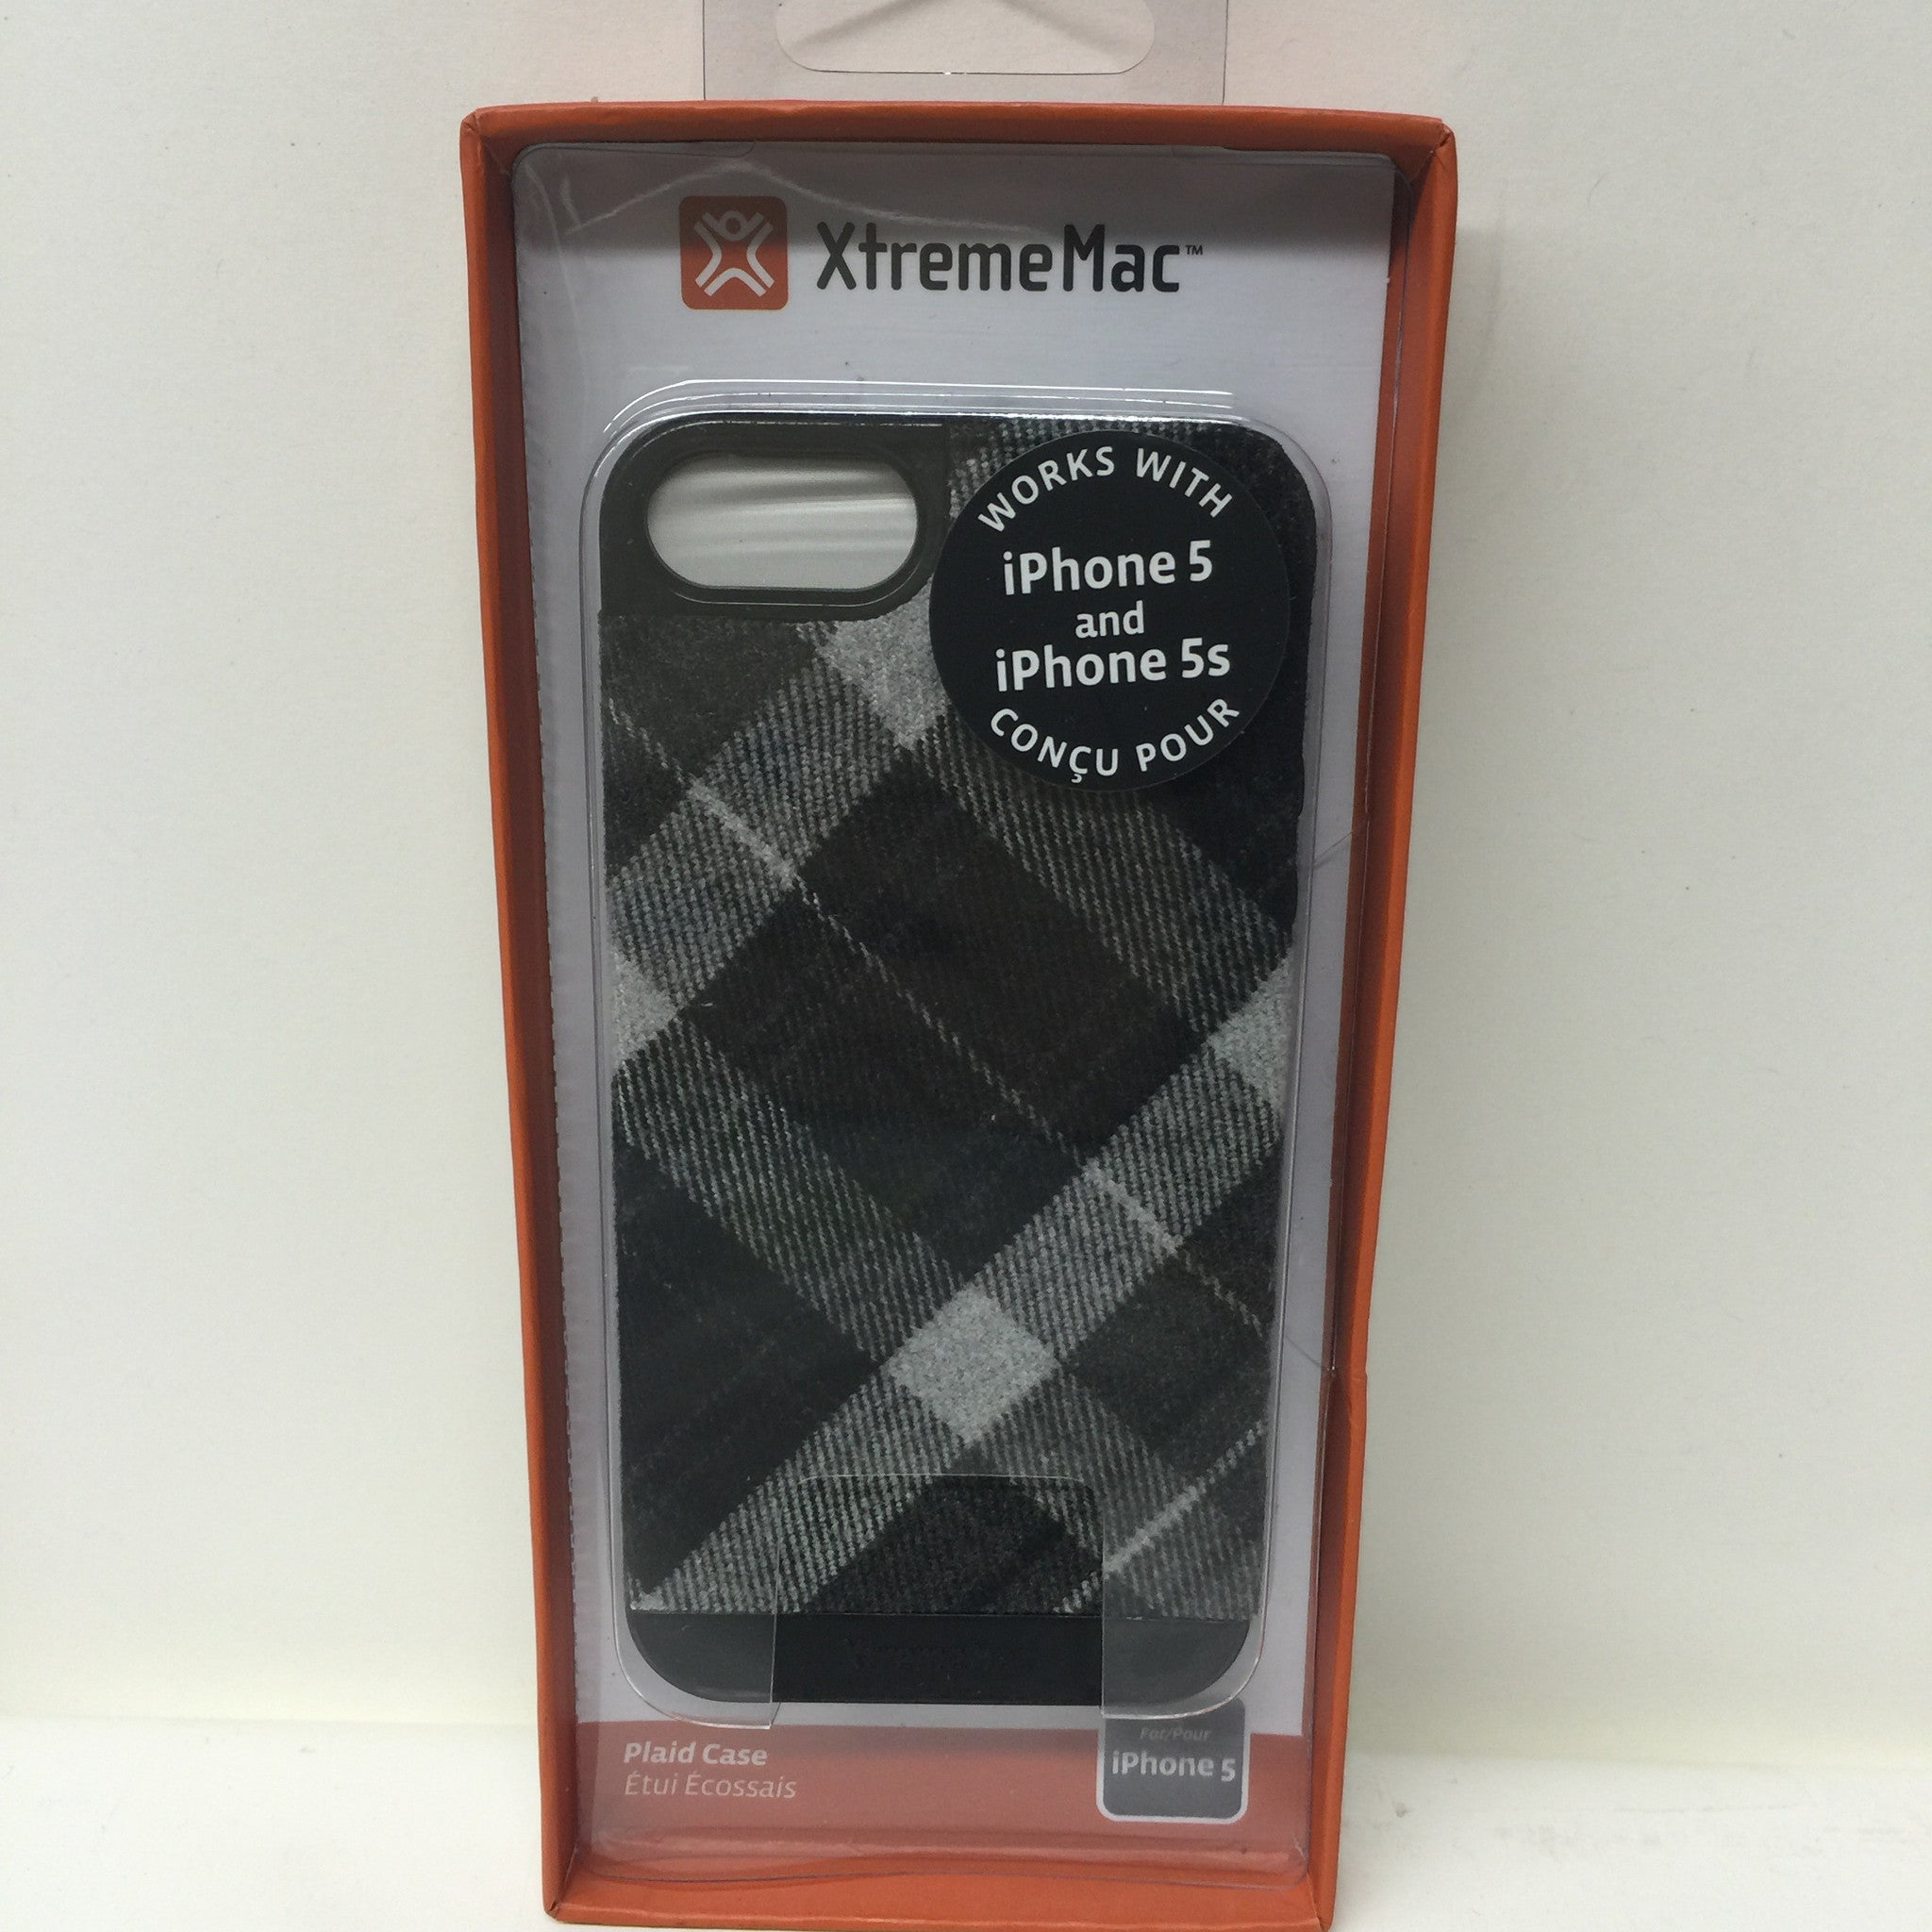 XtremeMac Black & White Plaid Case IPP-MSMW5 03 - LiquidationOutlet.ca